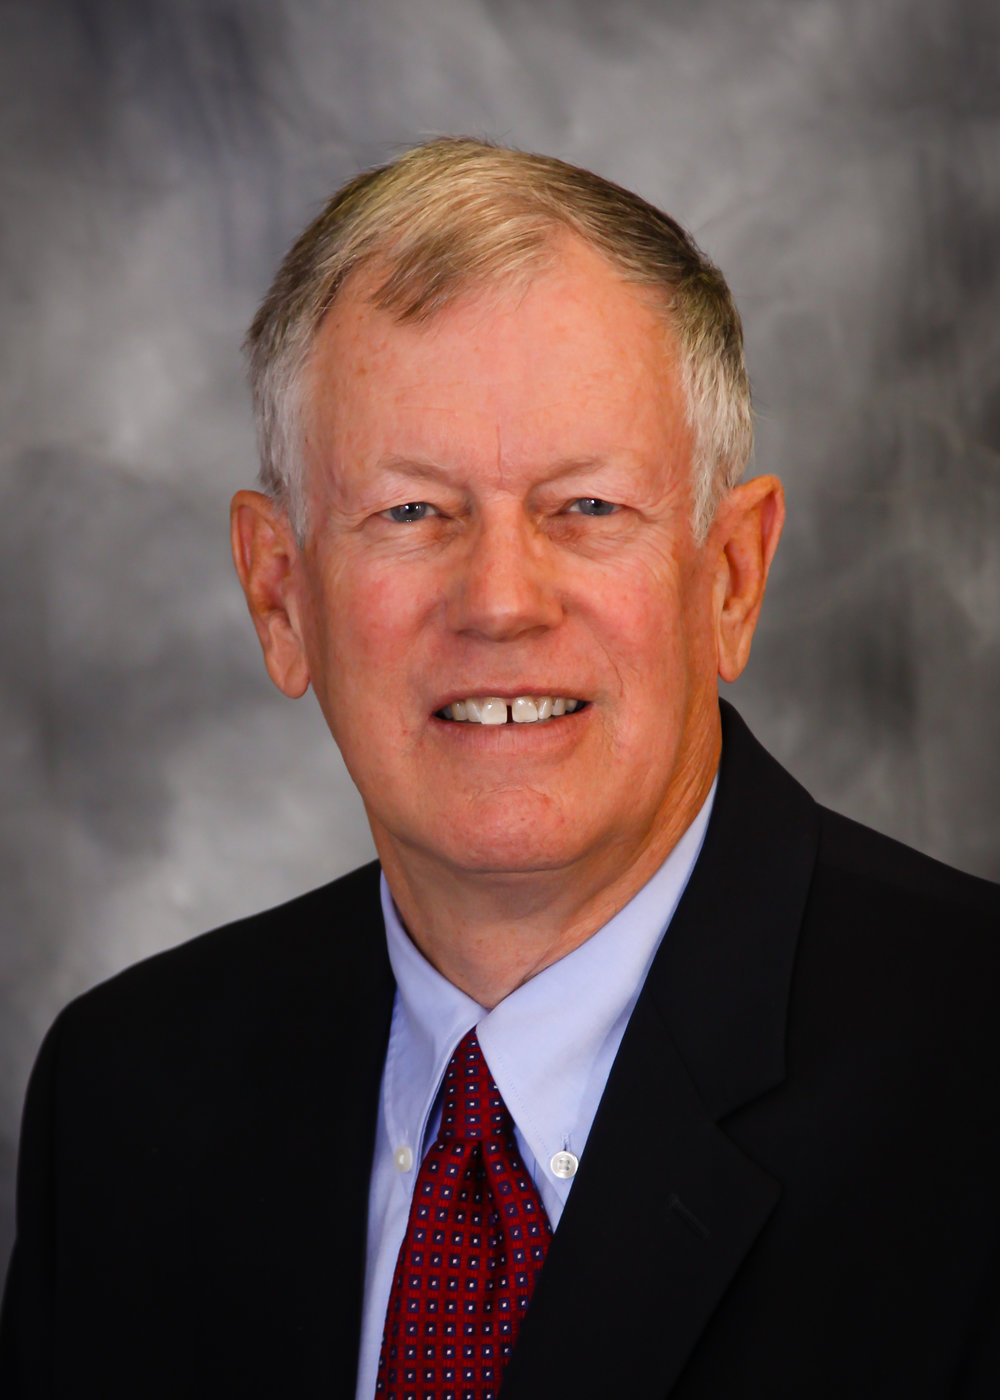 - George L. Anderson has practiced in most areas of the law since 1976, and for over 35 years has maintained an AV rating from the Martindale Hubbell legal rating service. Currently, he specializes in complex agriculture, agribusiness, business, and contract matters. His clients include individuals with personal matters, and small and large farms and businesses, including nationally recognized farms.EDUCATIONLewis and Clark College, J.D.University of Oregon, M.A.Whitman College, B.A.